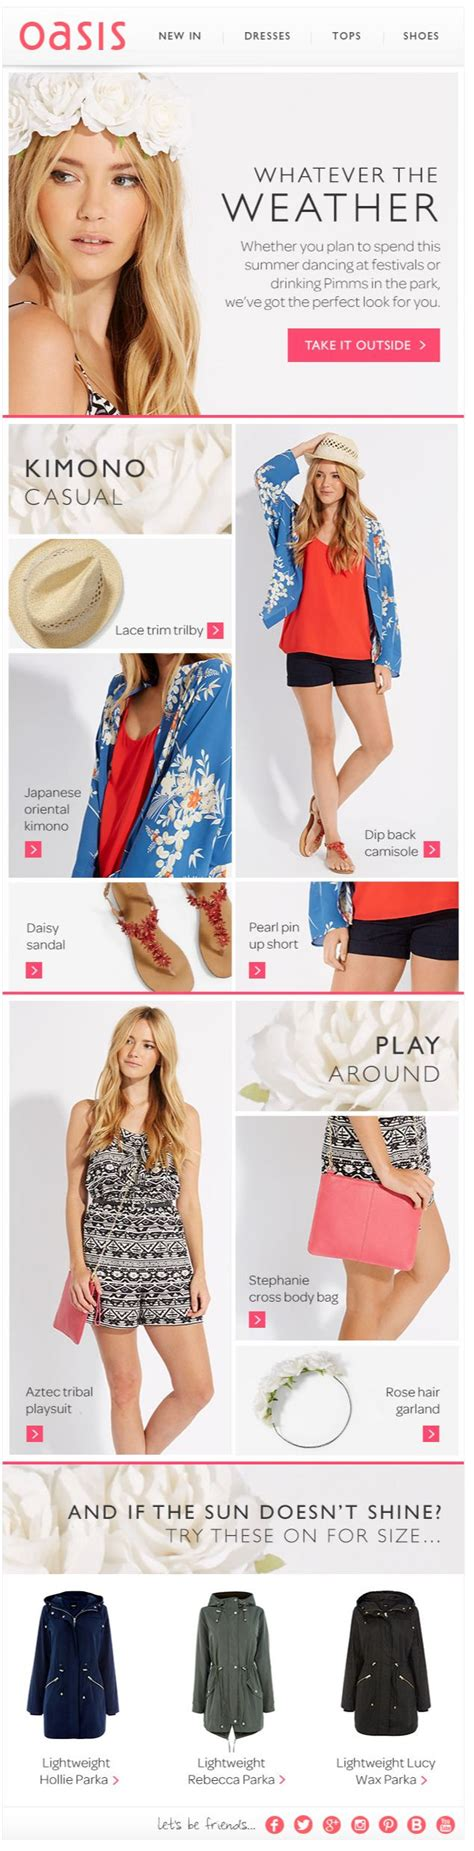 315 best images about fashion newsletters on email newsletters toms and free 315 best images about fashion newsletters on email newsletters toms and free